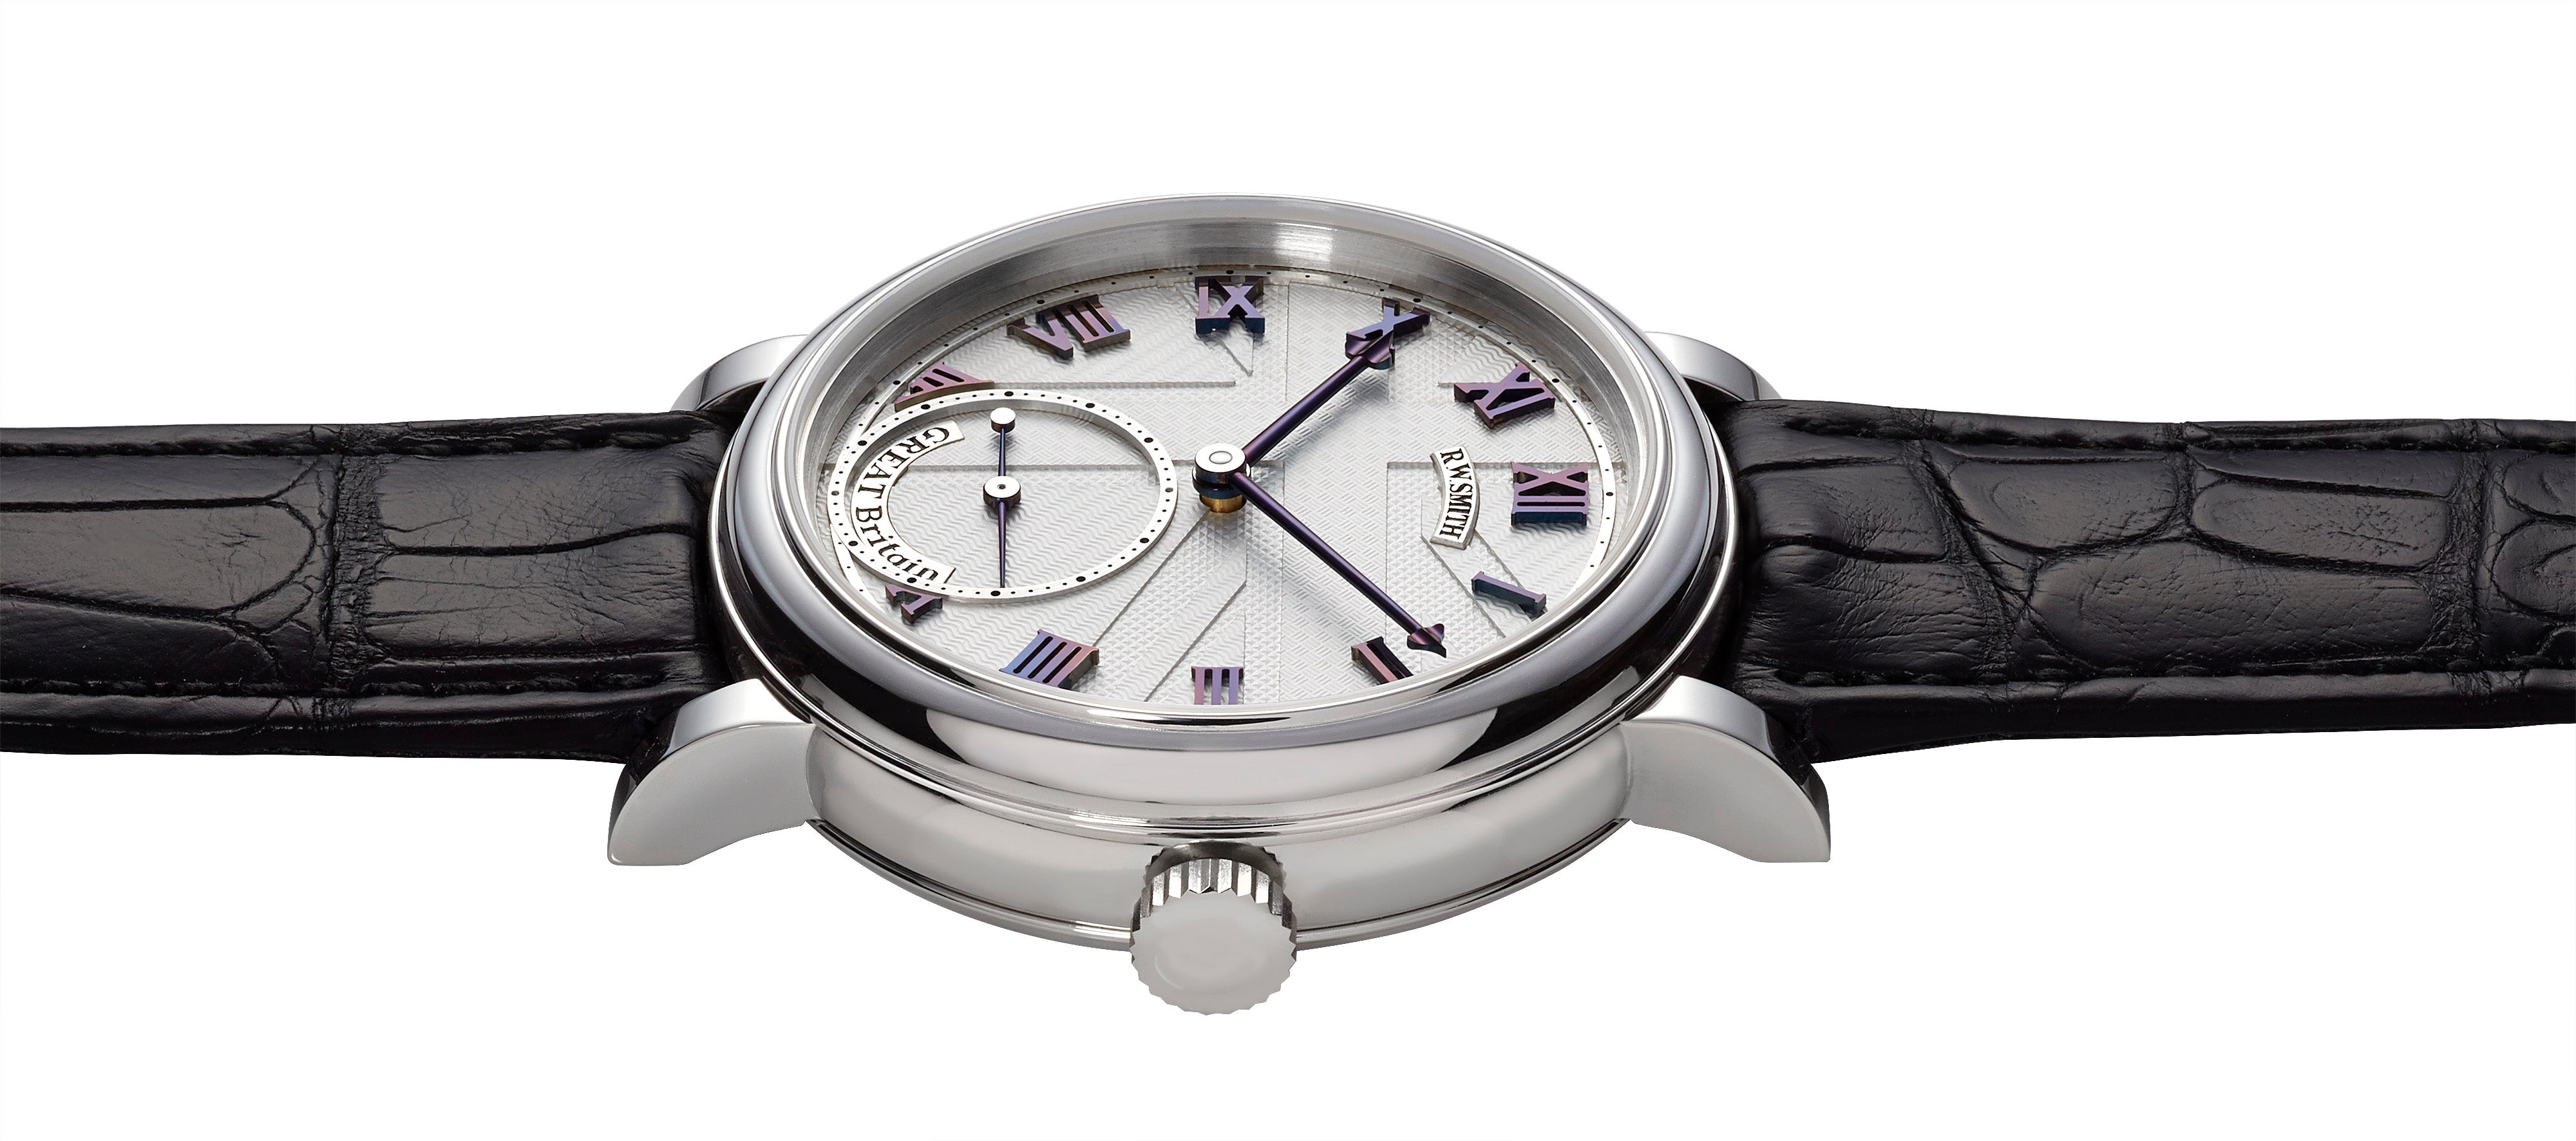 Roger W Smith GREAT Britain unique hand-made watch with Union Jack guilloche dial